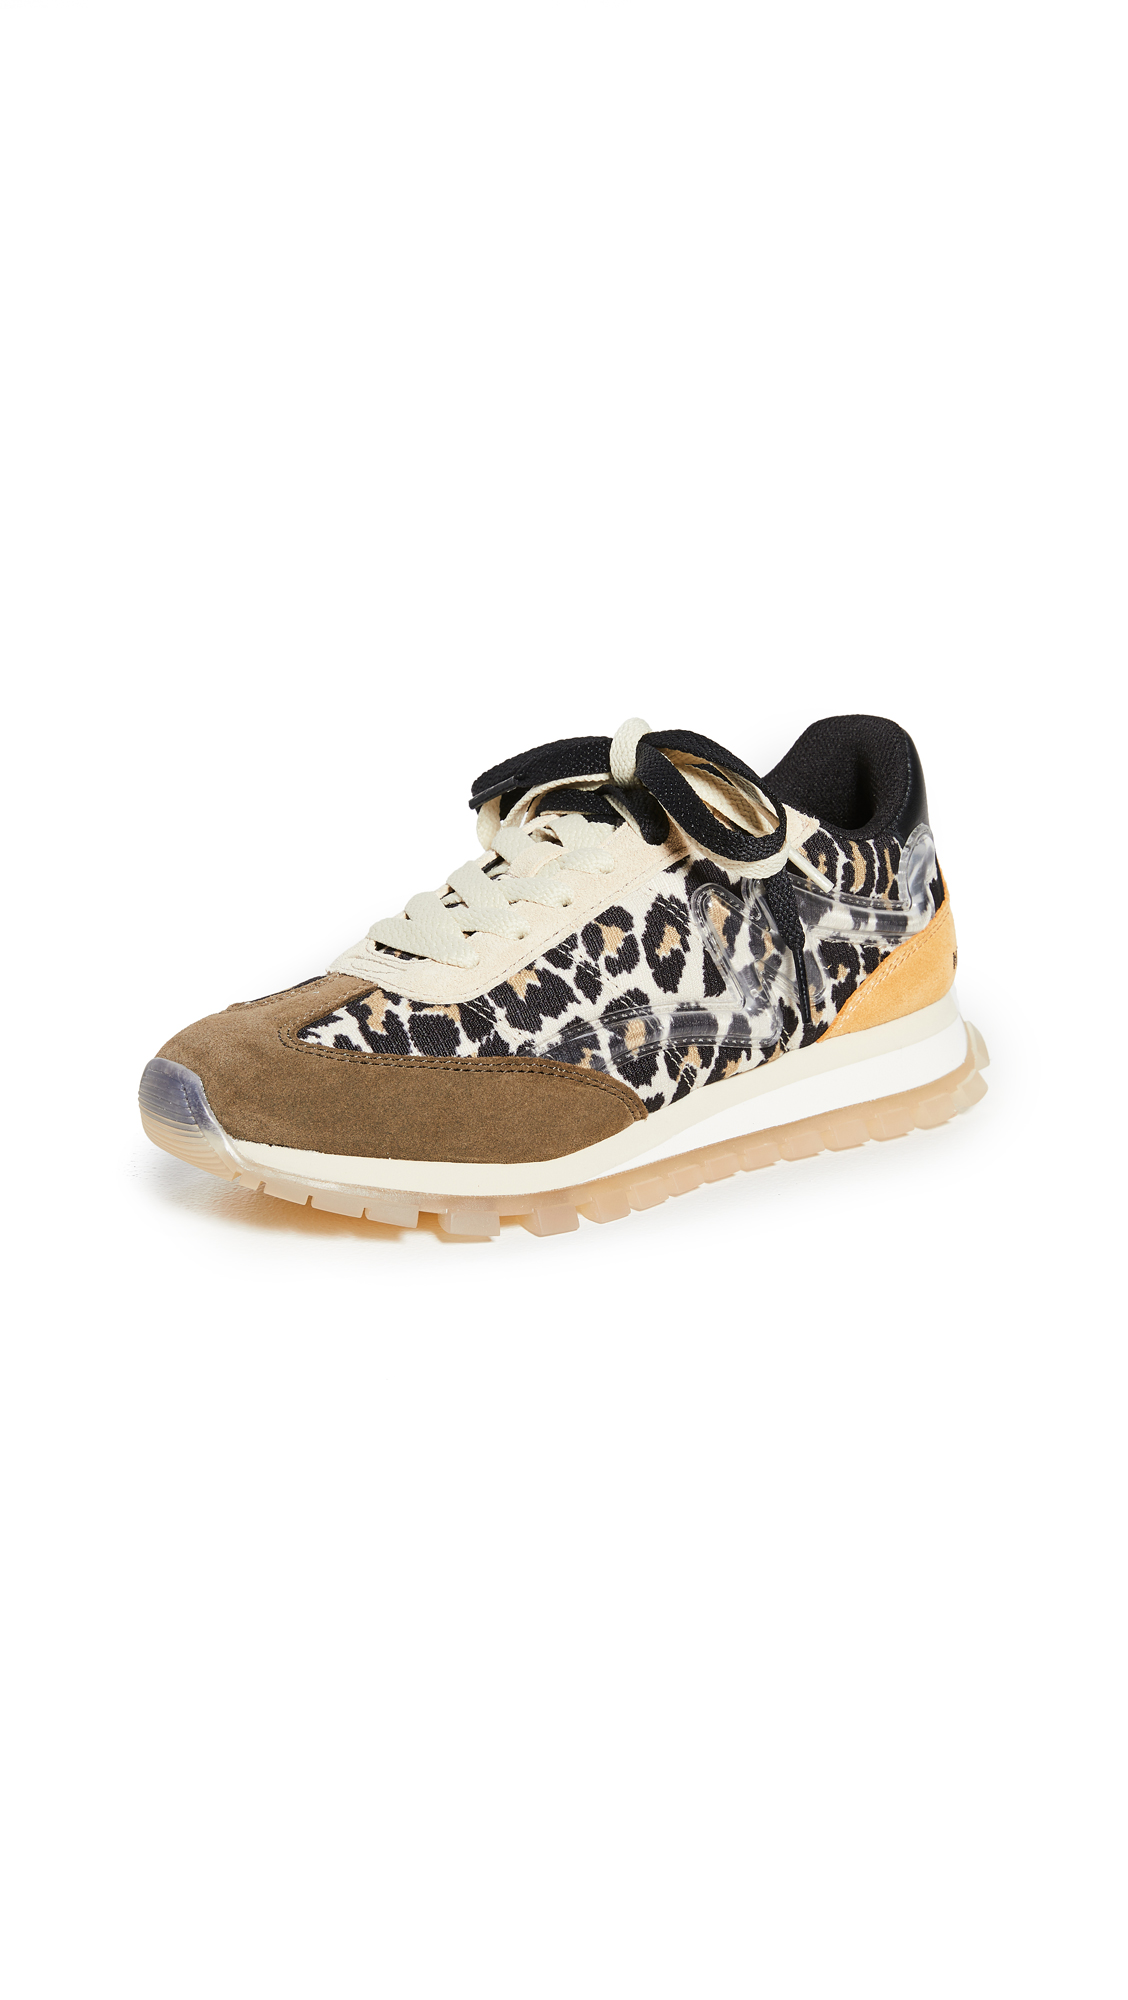 The Marc Jacobs The Leopard Jogger Sneakers